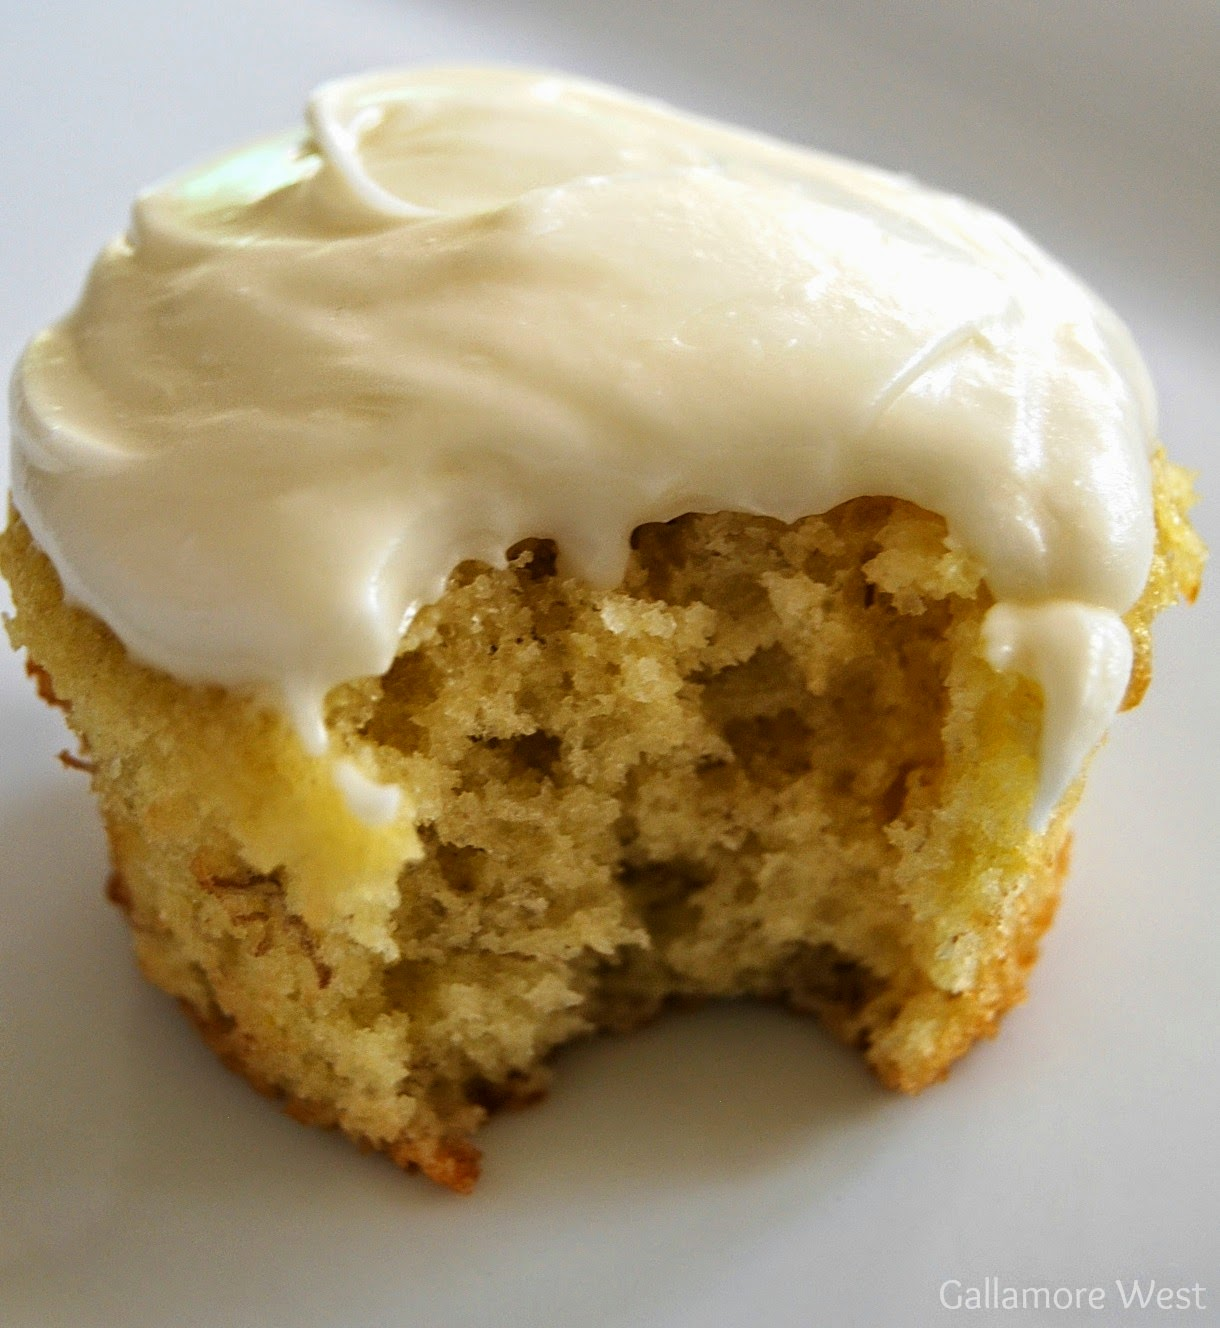 Frosting Is Soft Set And Works Best When Spread On Cupcakes With A Knife No Fancy Piping Skills Needed For This Recipe